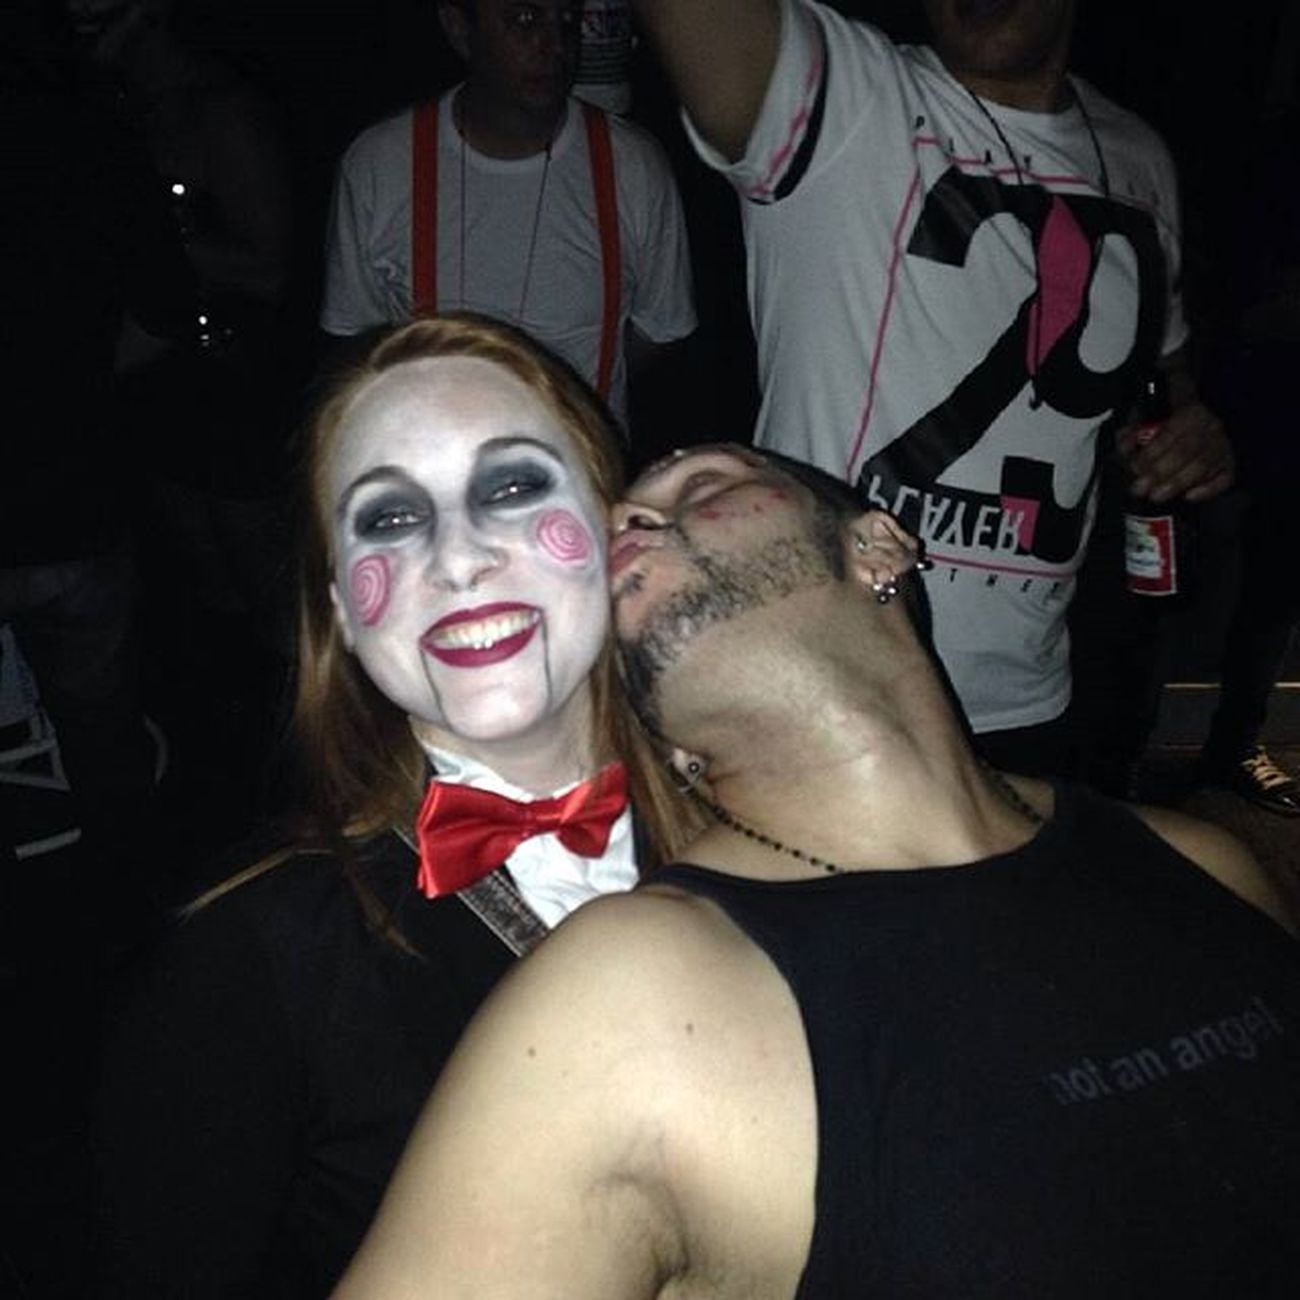 Amooooooo demais ❤ Instagram Amigos Party Saturdaynight Partyallnightlong GaleraReunida Galeradabagunça Balada Festa Bebedeira Alcool  Hallowen DiaDasBruxas Hallowentrash Hallowentrash80s Anos80 Trash80s